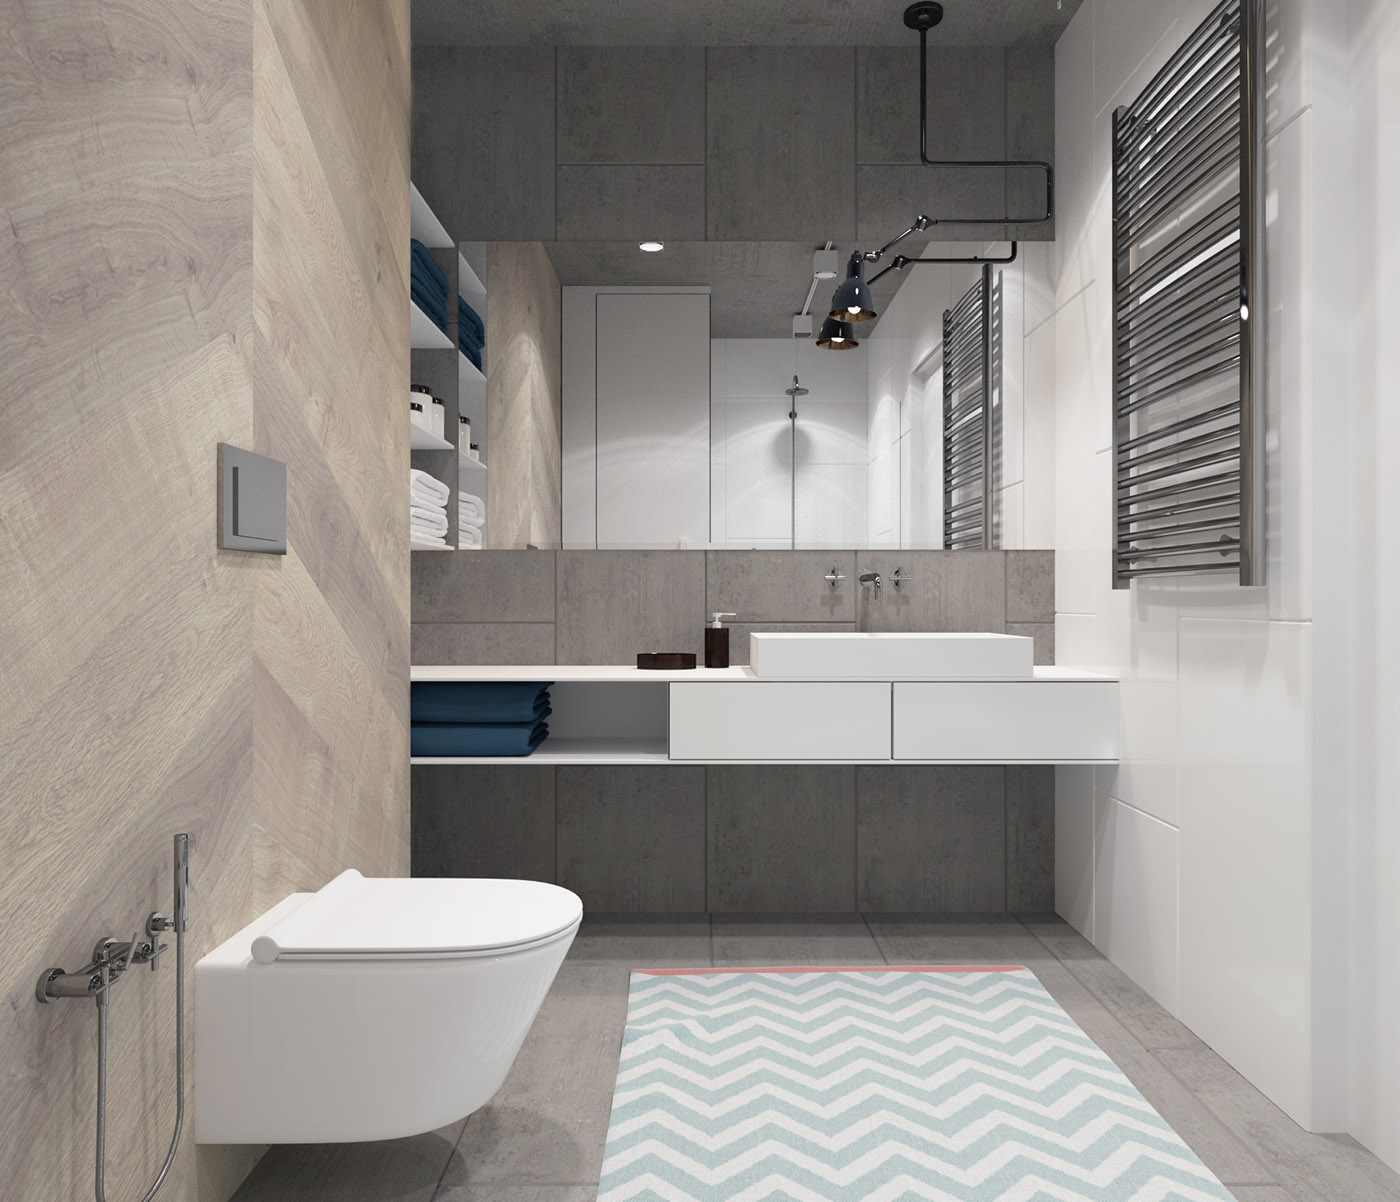 How To Create A Greyscale Bathroom: Gradient By Svoya Studio